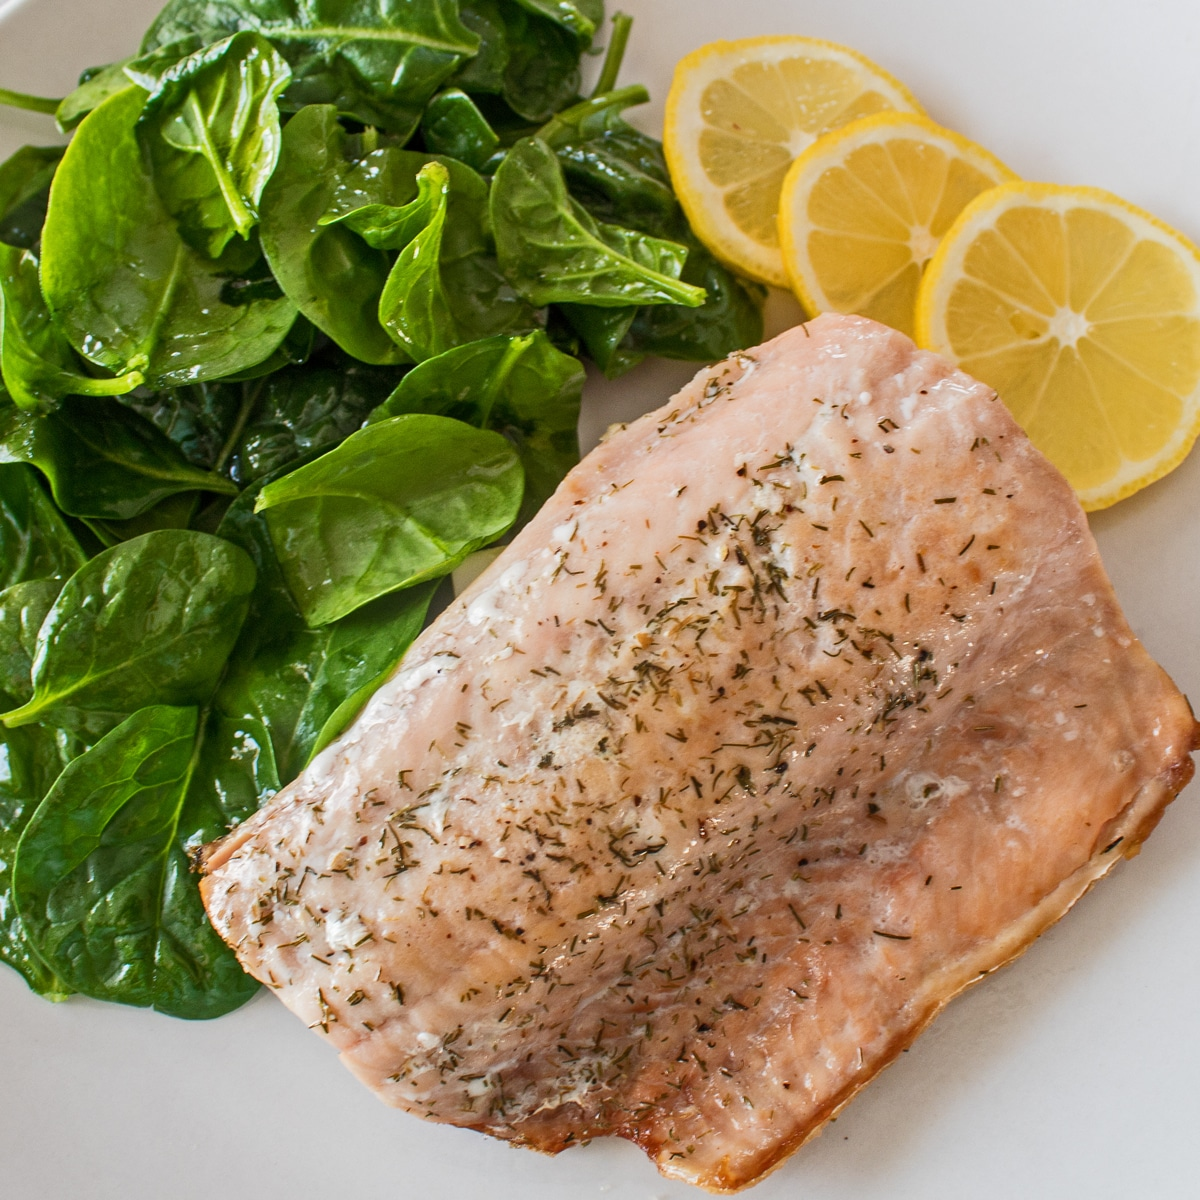 Pan seared salmon served with wilted greens and lemon slices.